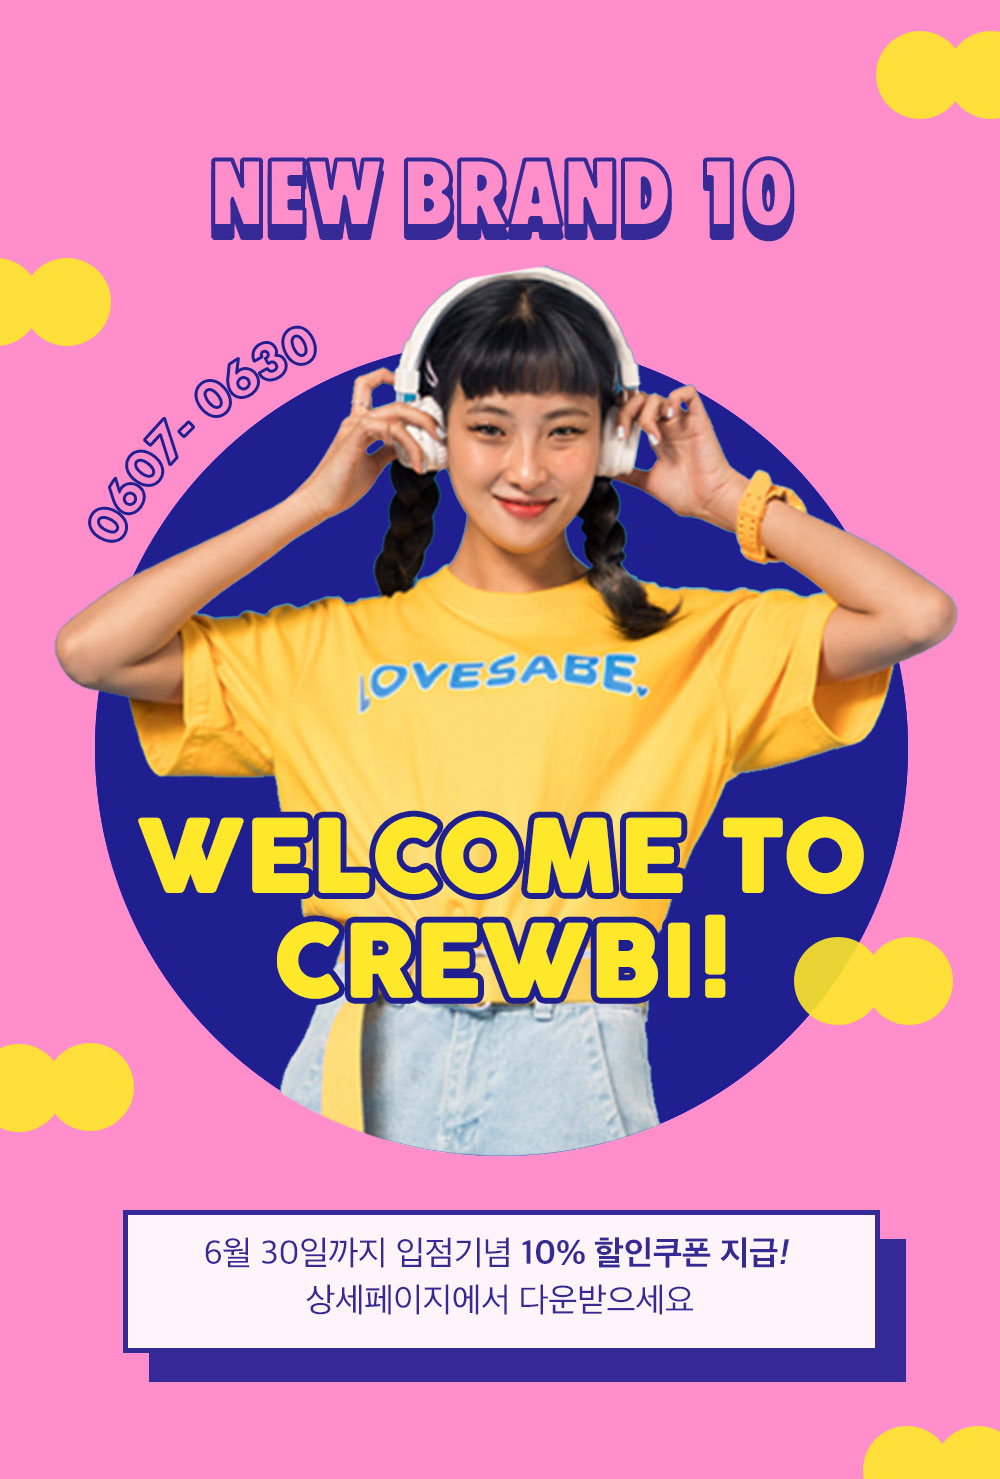 WELCOME NEW BRAND 10